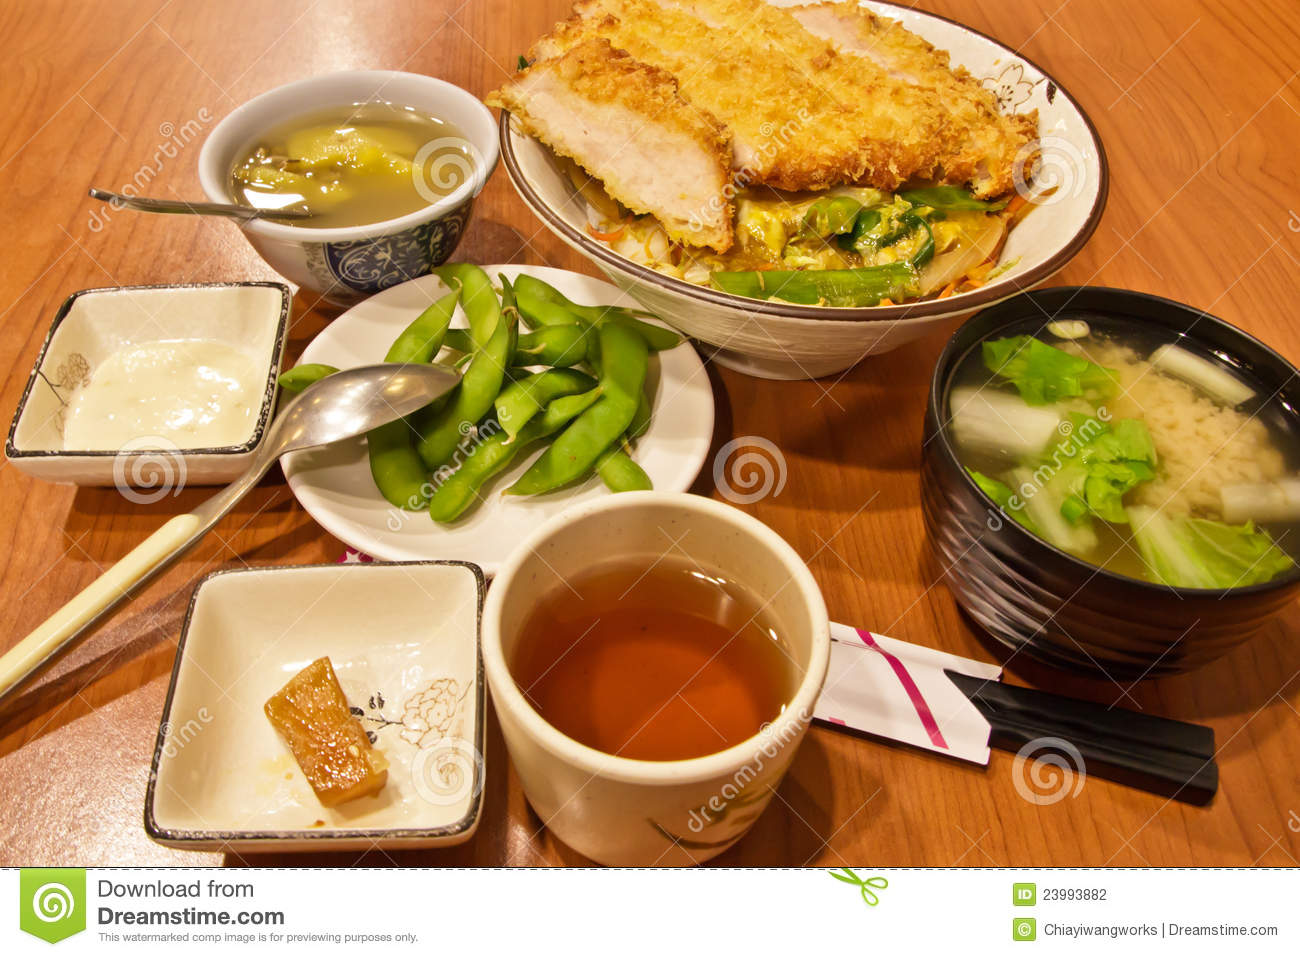 Japanese cuisine stock photography image 23993882 for Asian cuisine appetizers